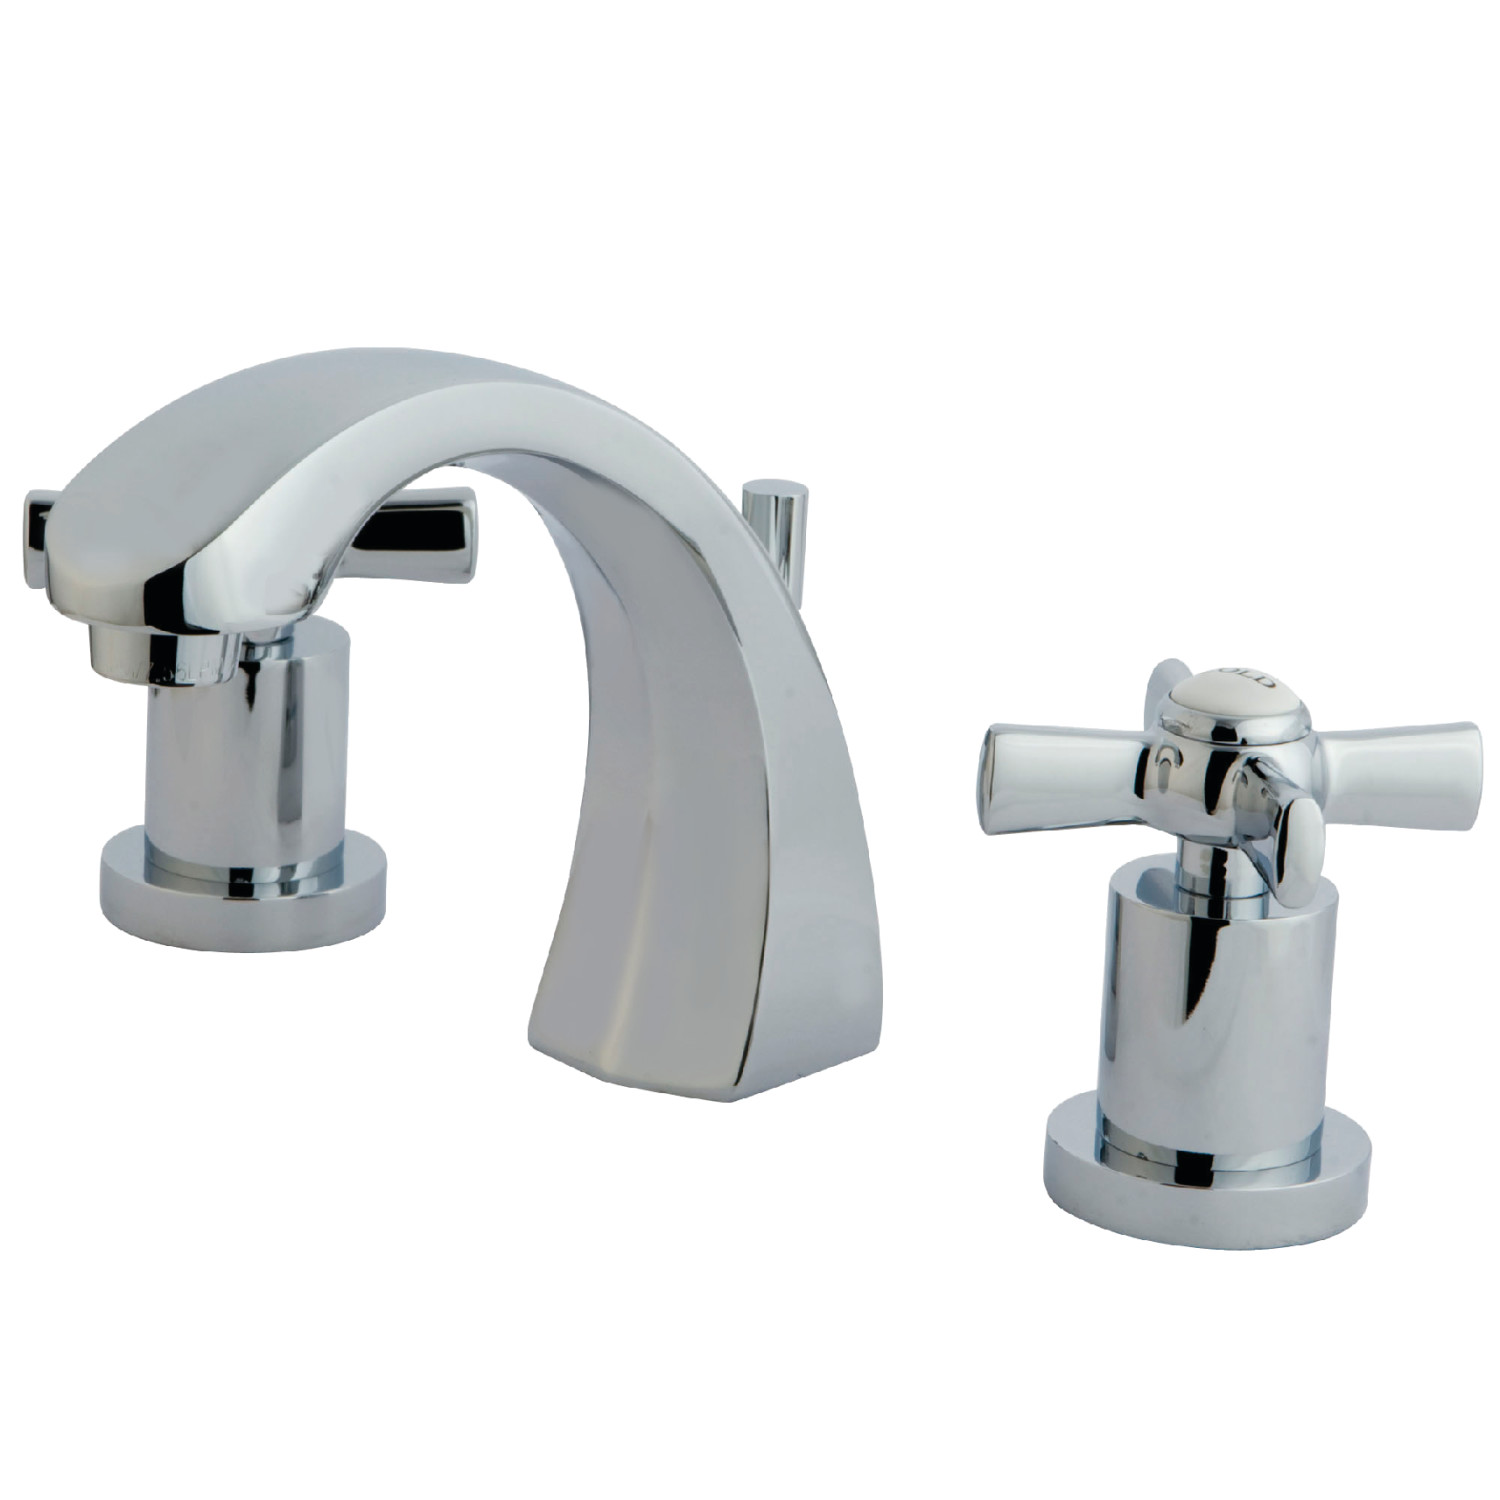 Modern 2-Handle 3-Hole Deck Mounted Widespread Bathroom Faucet with Brass Pop-Up in Polished Chrome Finish